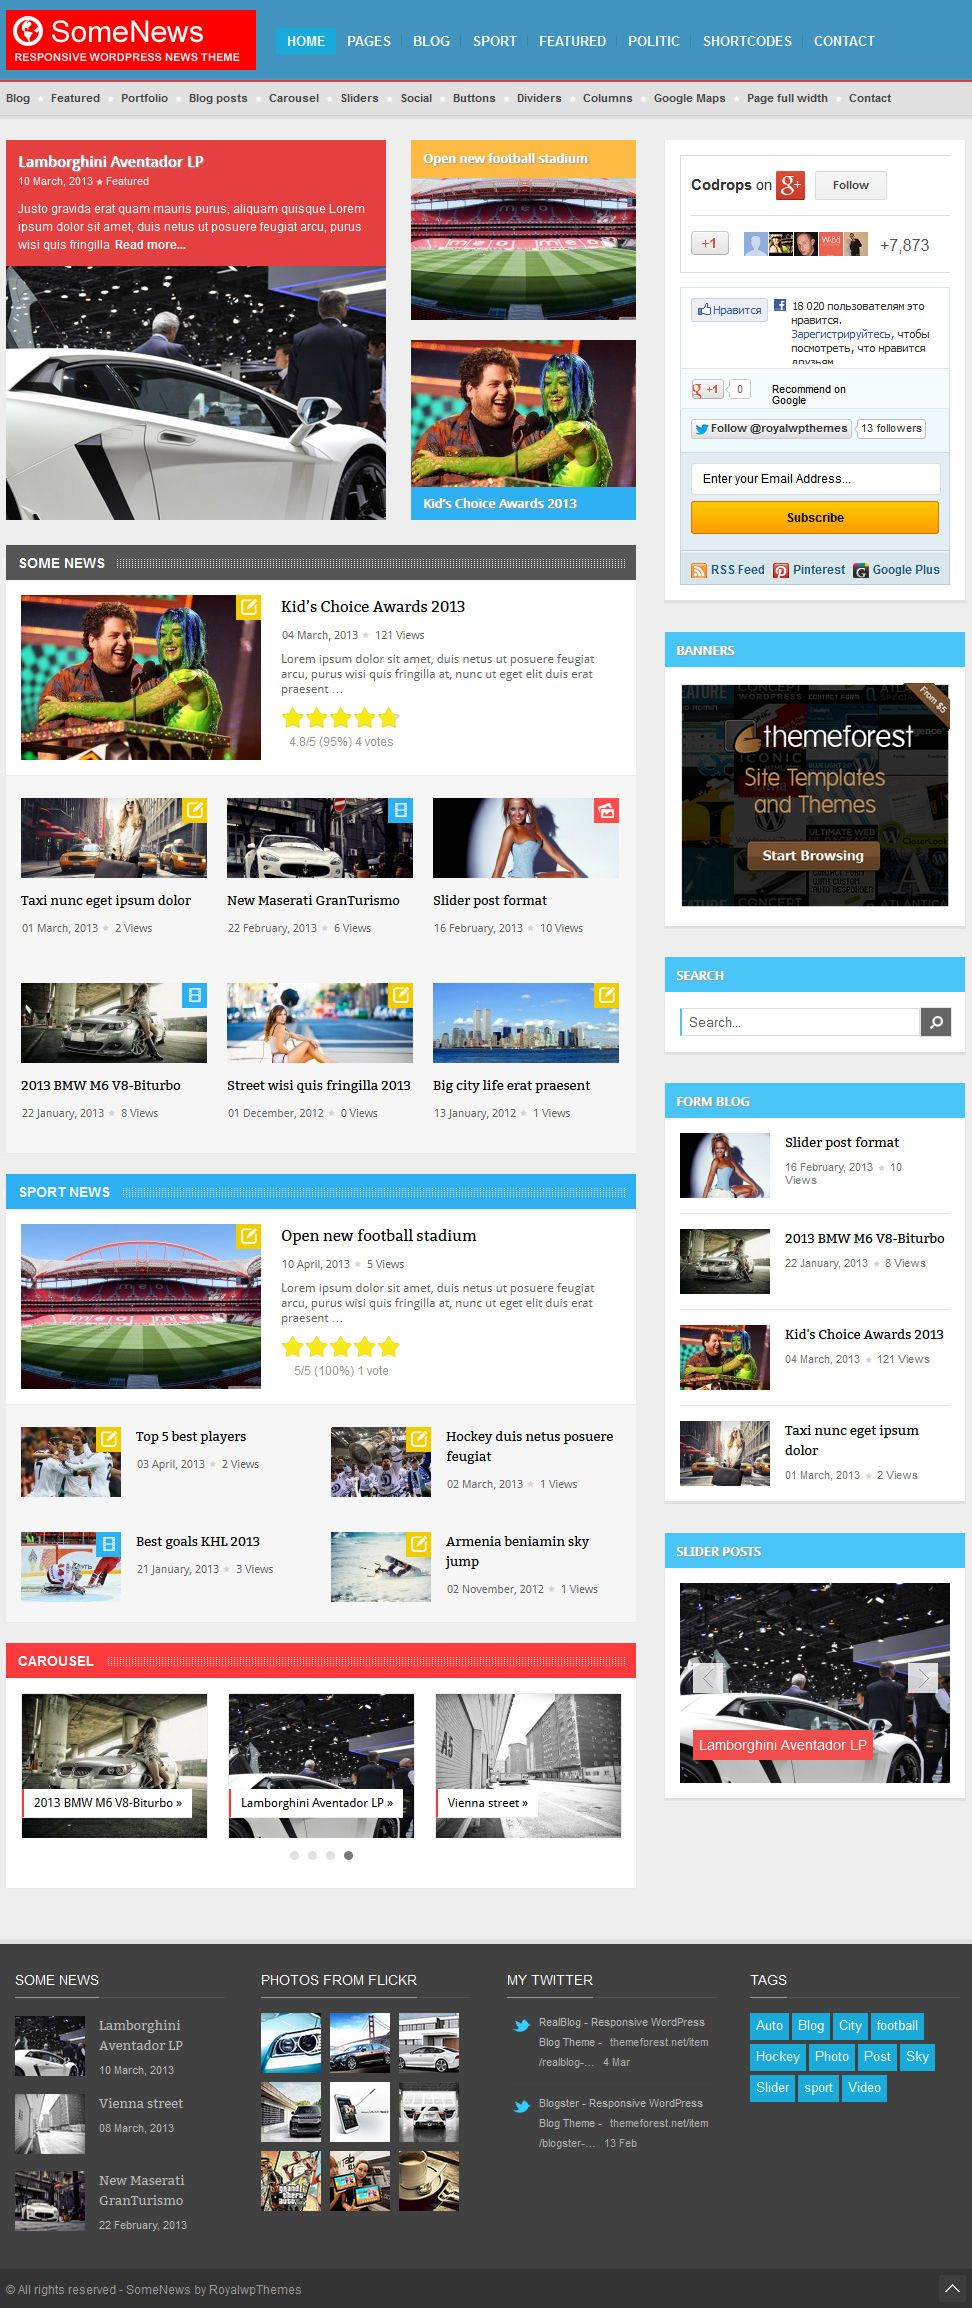 Some News - Responsive WordPress News Theme - Mojo Themes ...